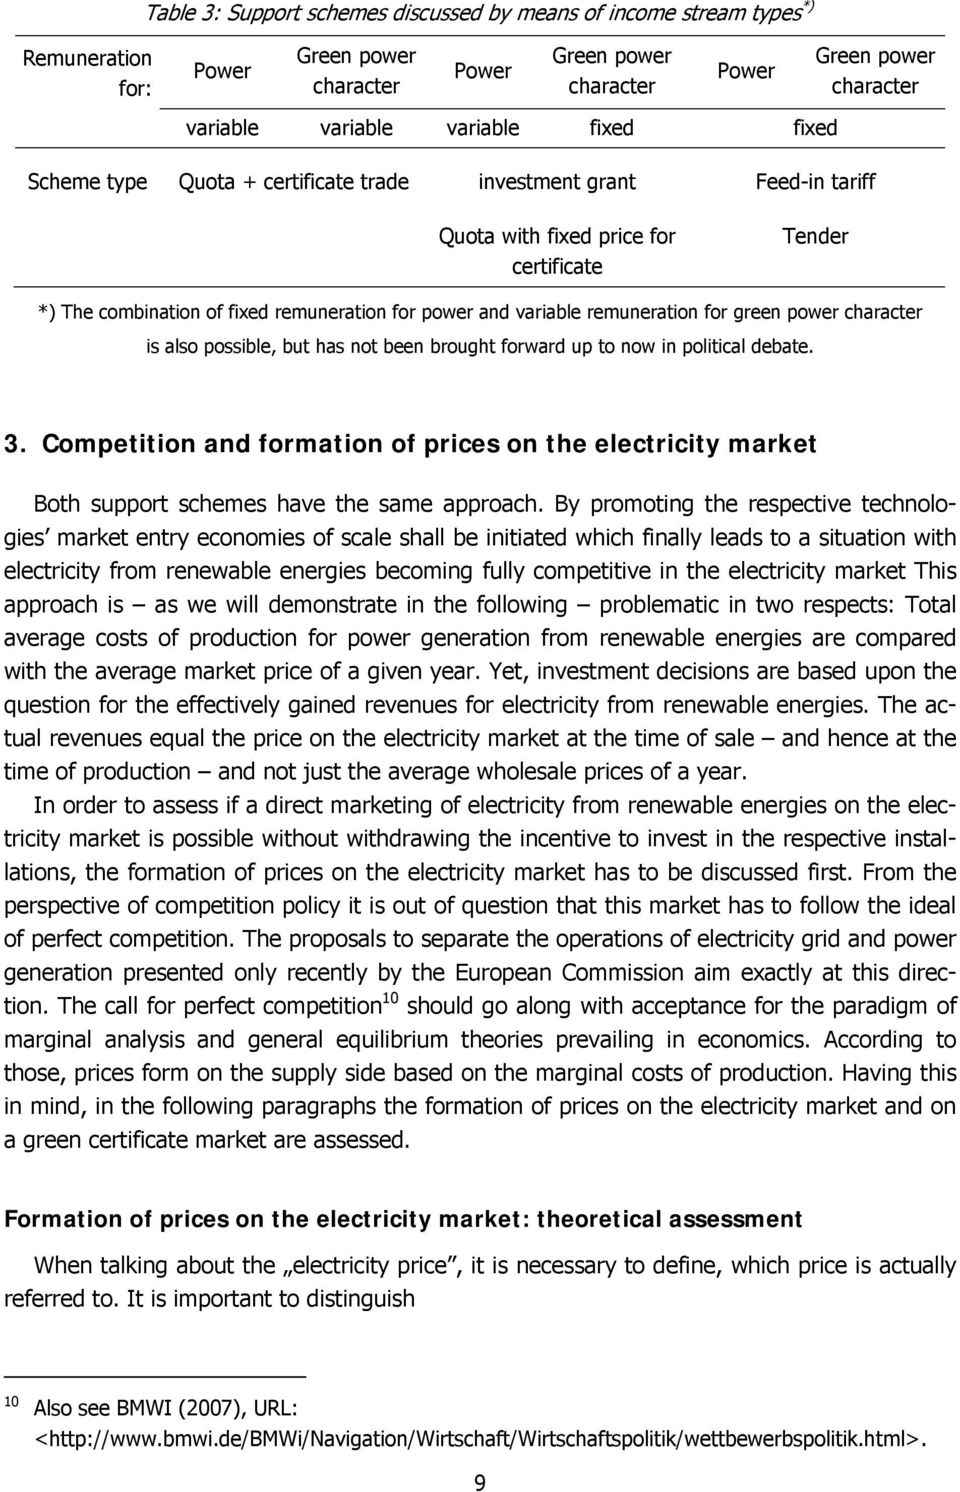 remuneration for green power character is also possible, but has not been brought forward up to now in political debate. 3.